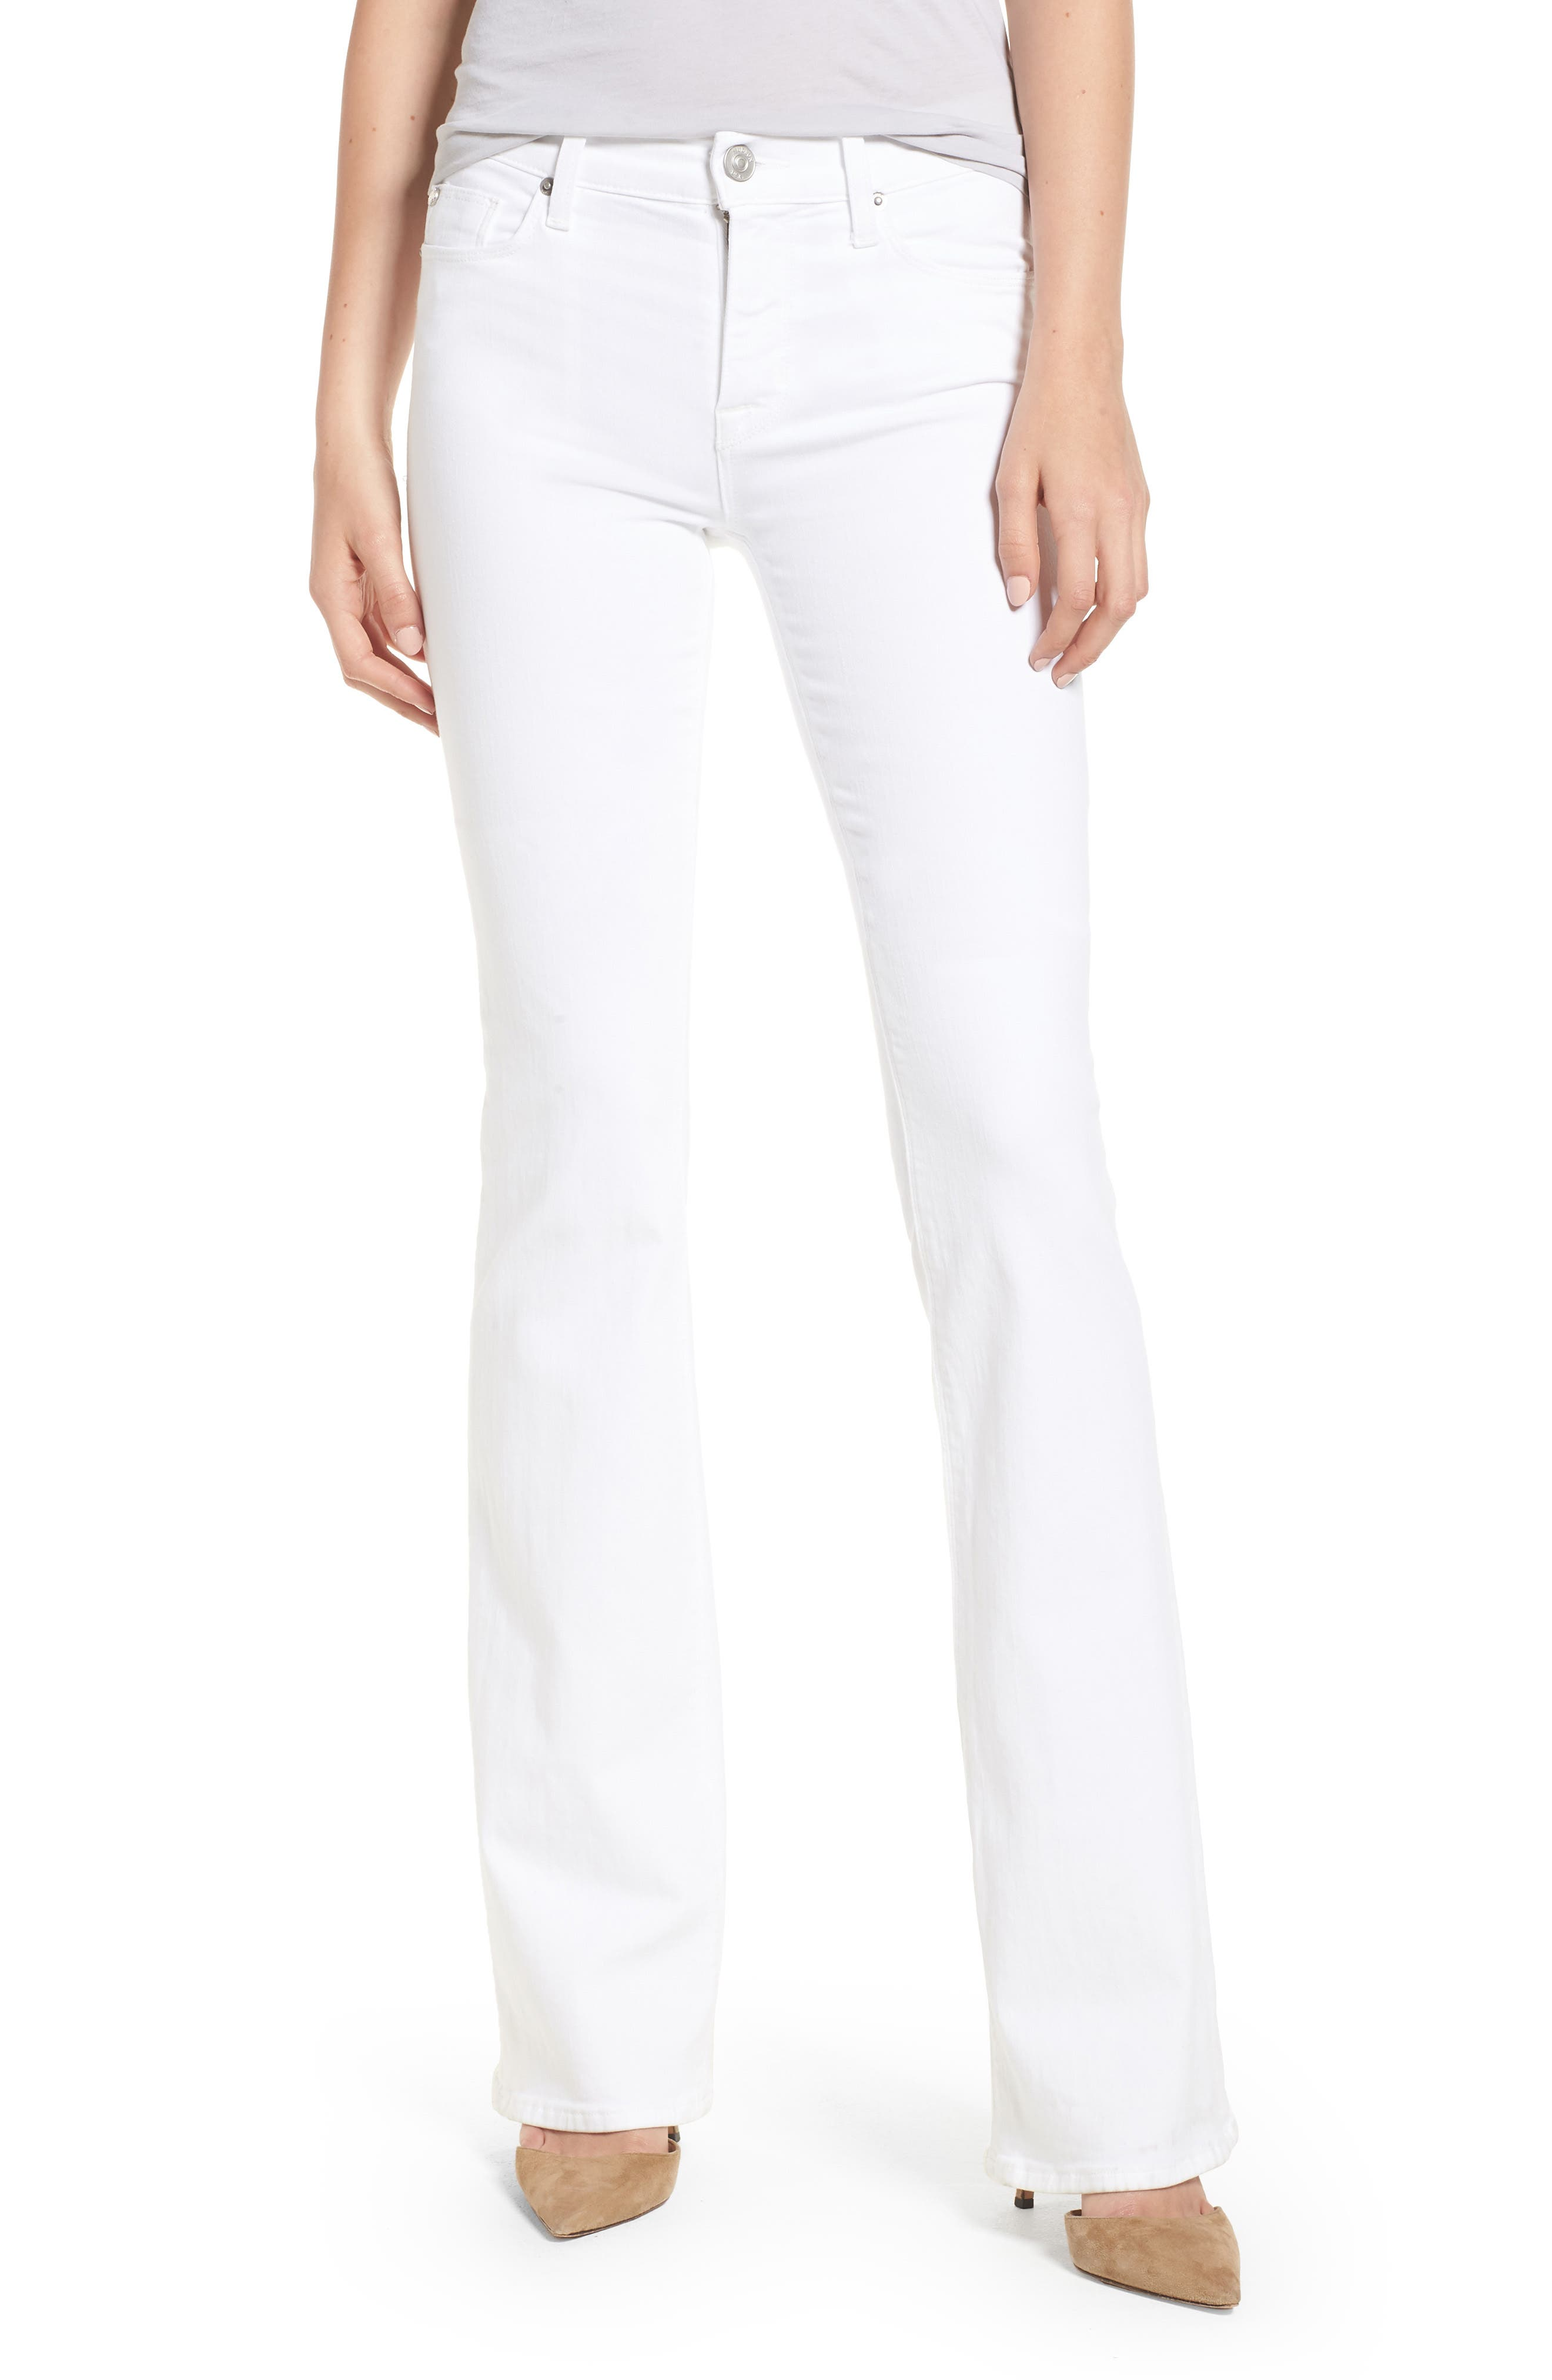 Drew Bootcut Jeans,                         Main,                         color, Optical White